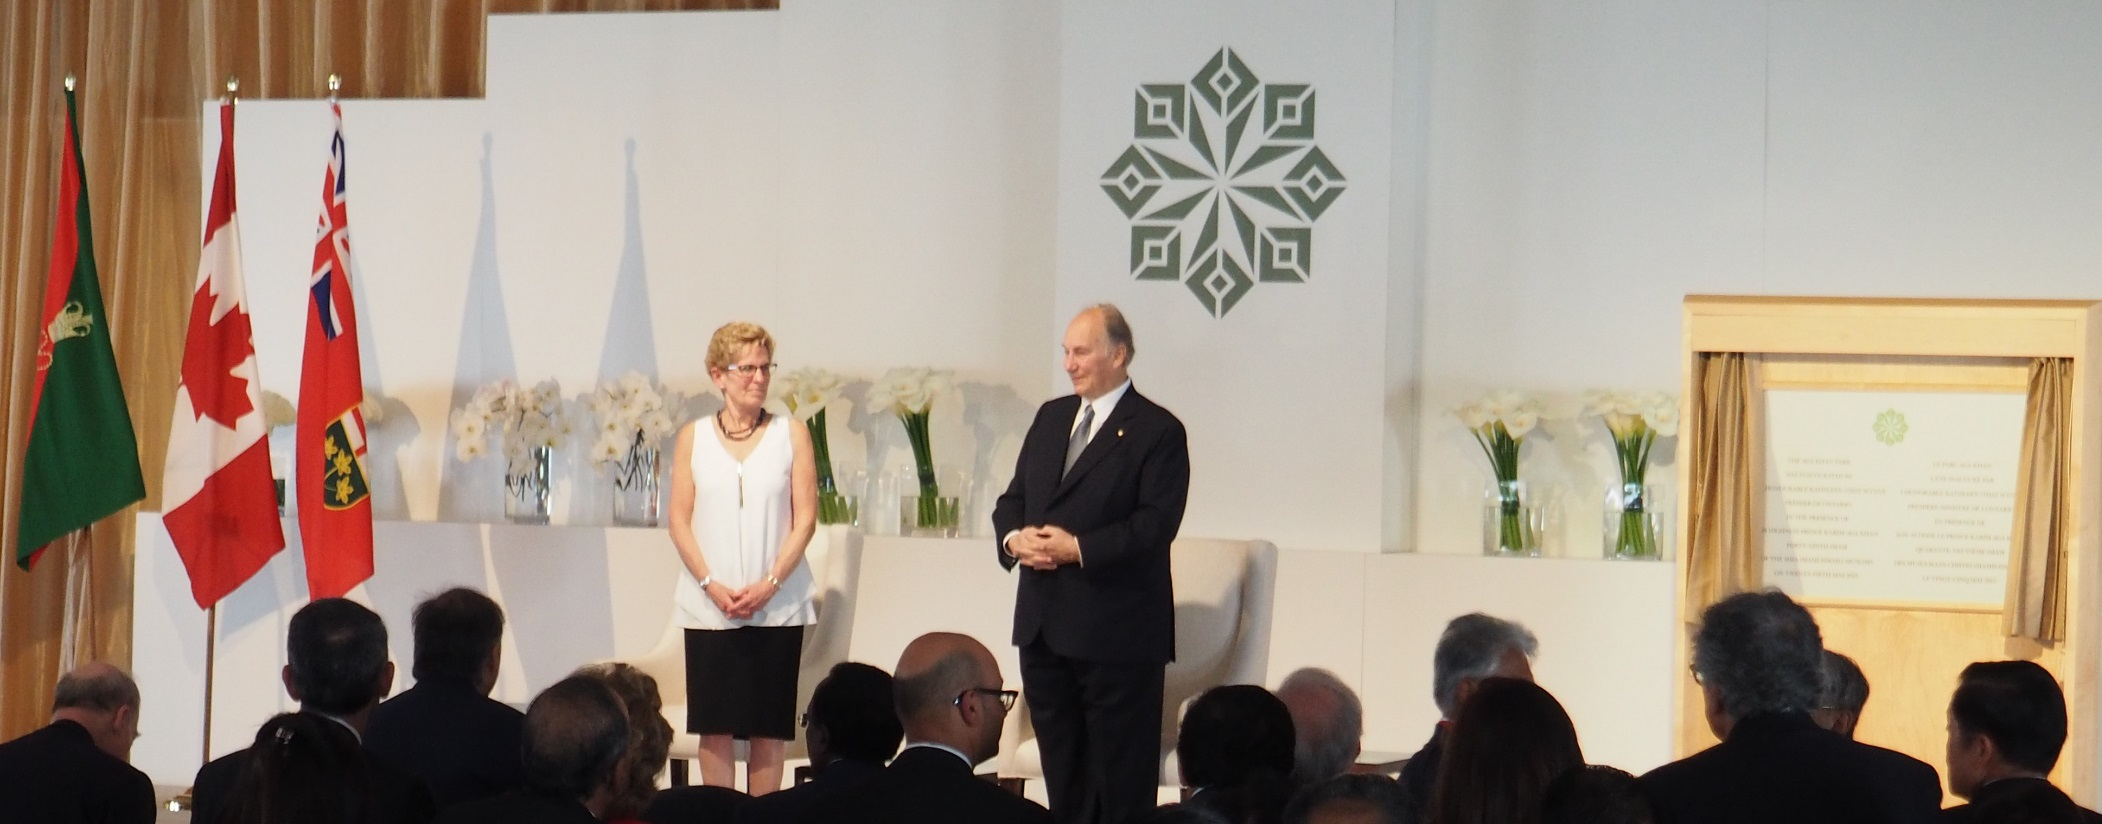 Mawlana Hazar Imam and Premier Kathleen Wynne prepare to depart after unveiling the plaque to open the Aga Khan Park on May 25, 2015. Also seen  in the photo are the logo of the the Aga Khan Park and the flags of the Ismaili Imamat (left), Canada, and the Province of Ontario. Photo: Simerg/Malik Merchant. Copyright.